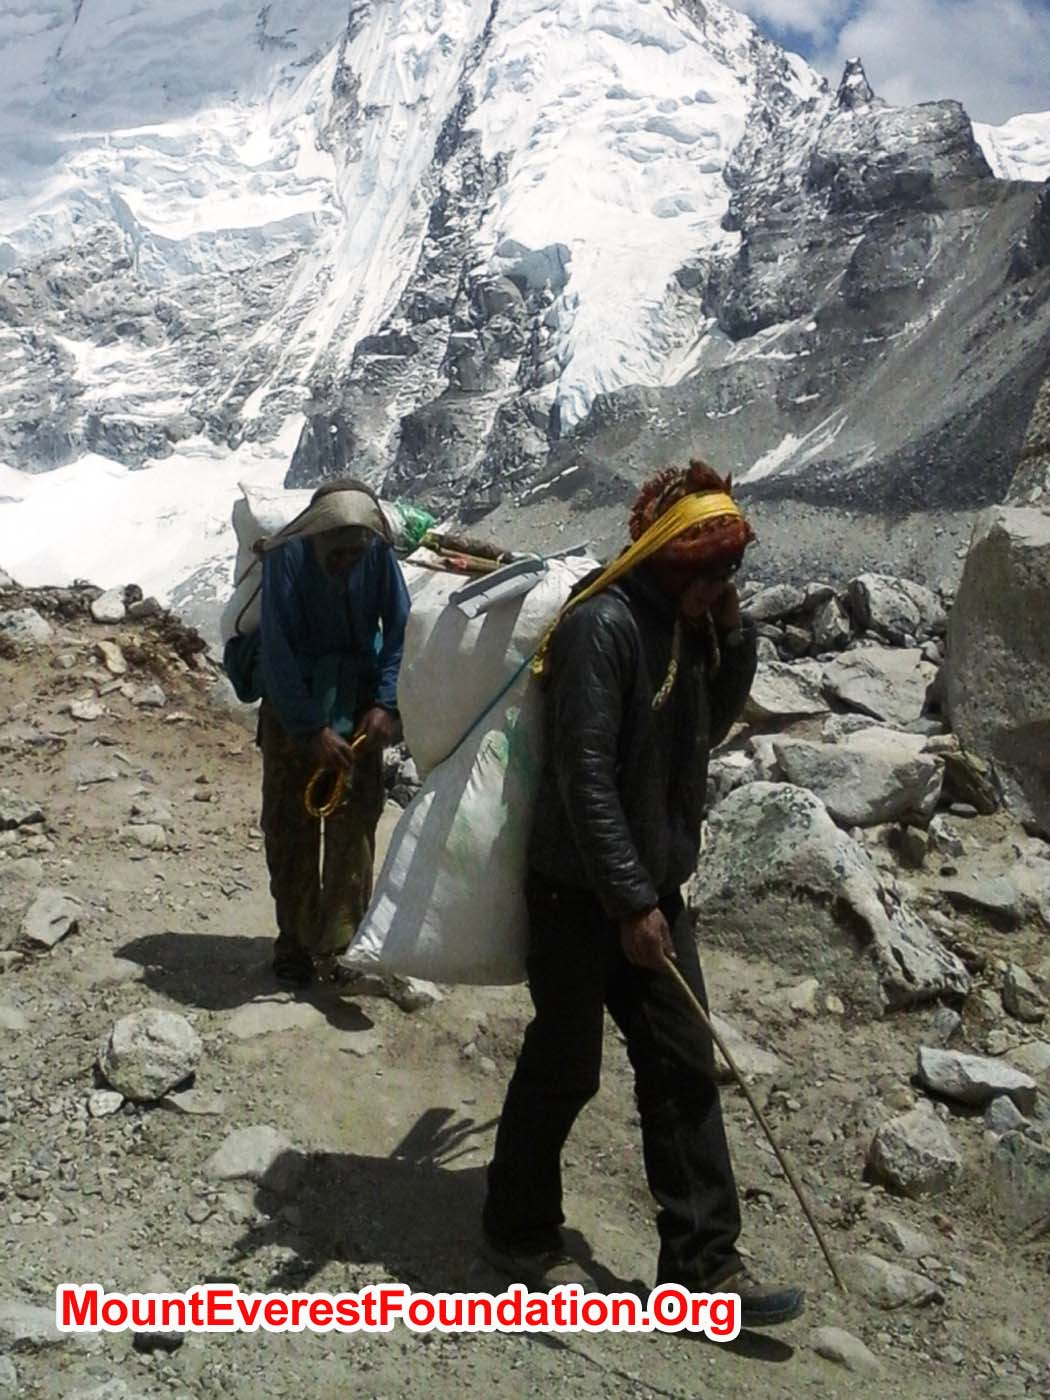 Porters carrying out tins, bottles, paper, and plastic from Mount Everest basecamp